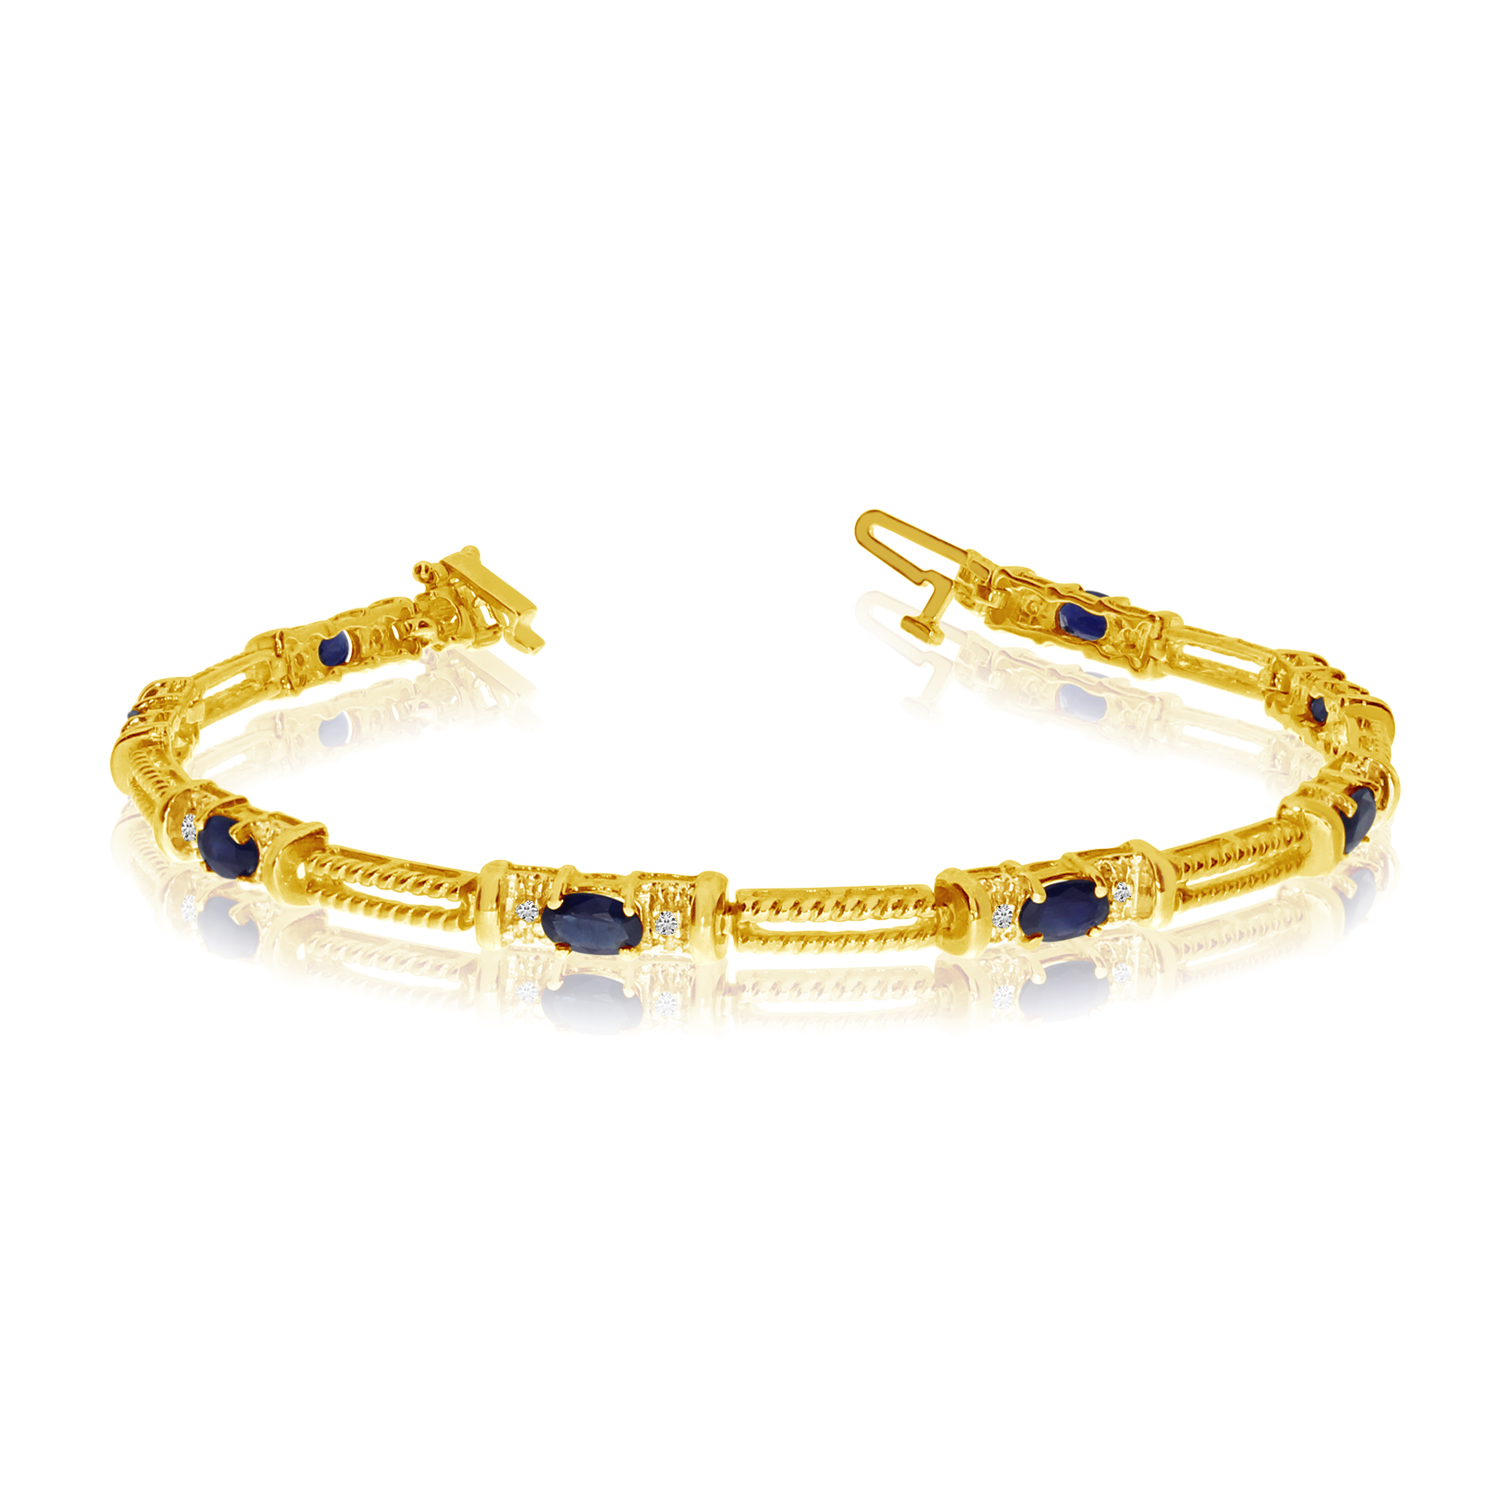 10k Yellow Gold Natural Sapphire And Diamond Tennis Bracelet by LCD